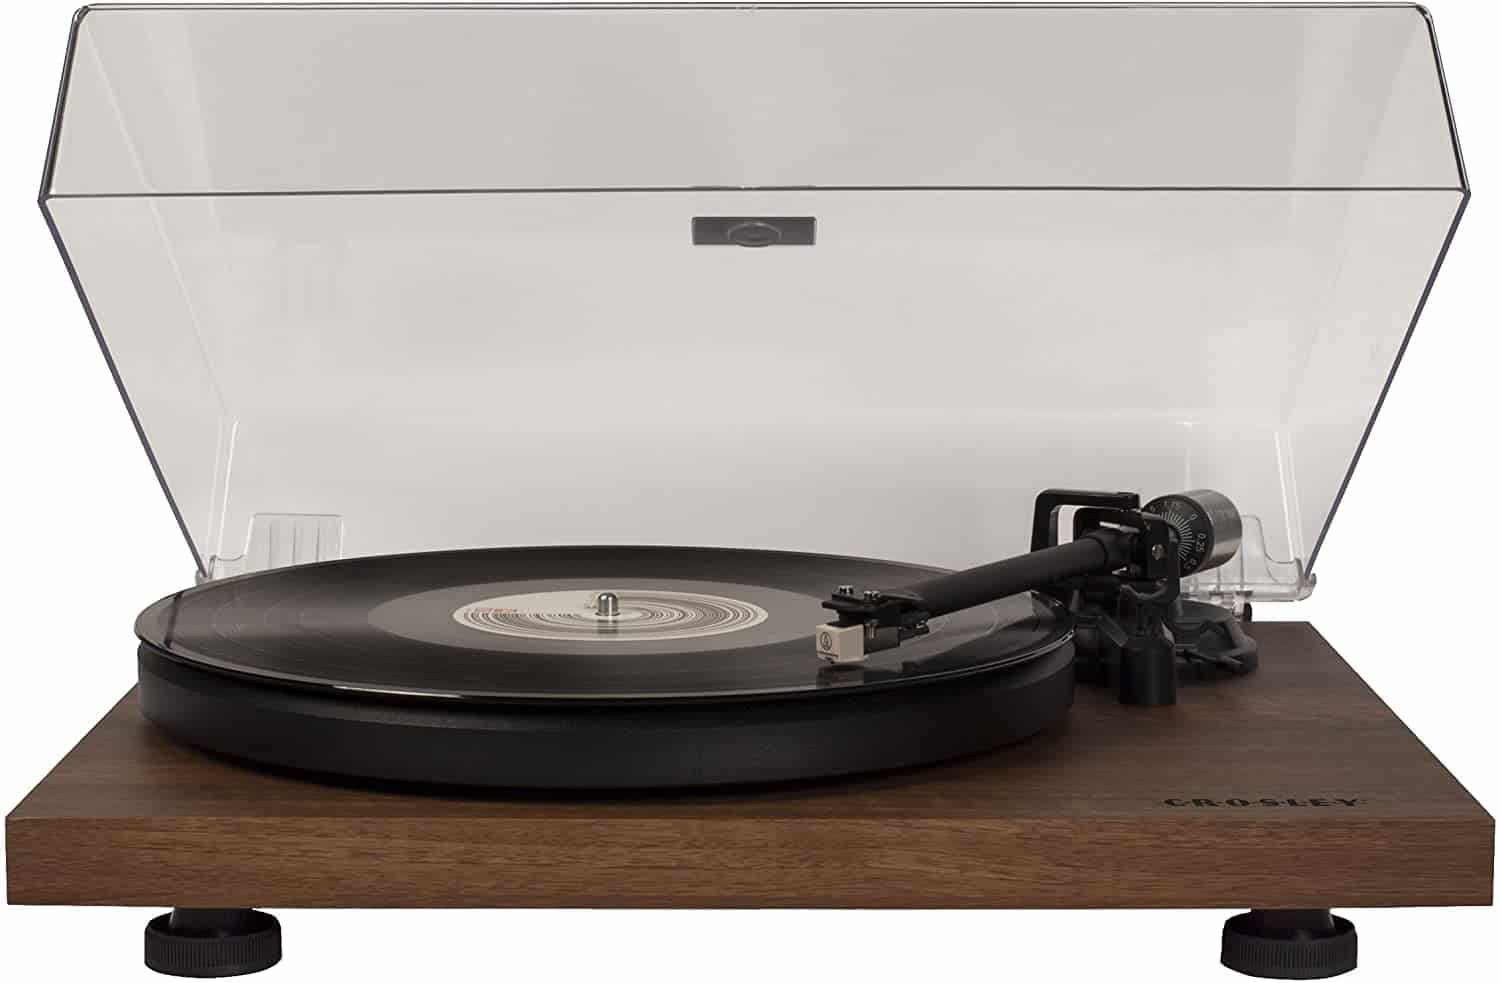 Crosley C6 Turntable with Preamp